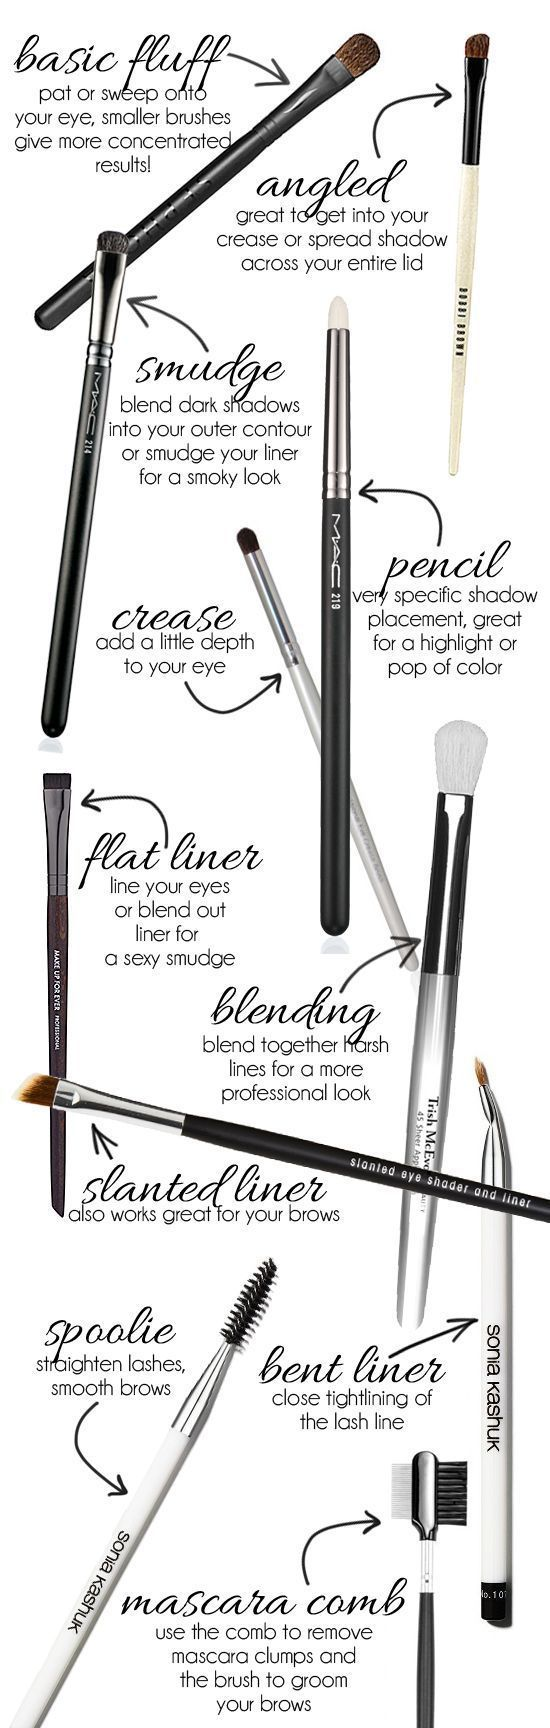 I'm so bad with makeup, and this is really helpful!